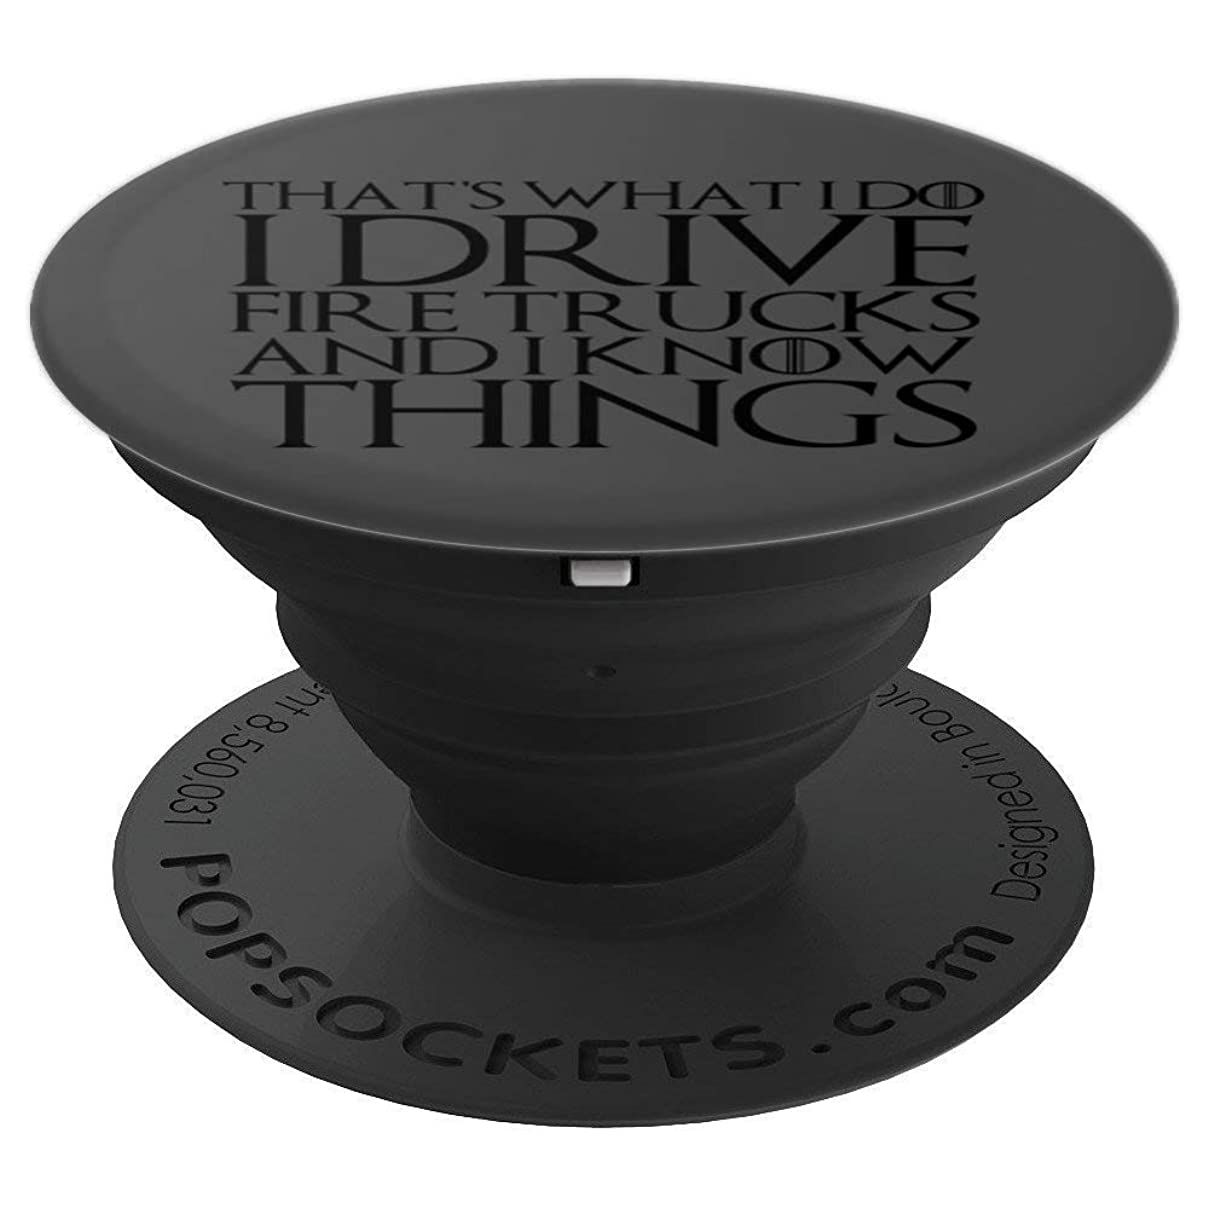 THAT'S WHAT I DO I DRIVE FIRE TRUCKS AND I KNOW THINGS - PopSockets Grip and Stand for Phones and Tablets